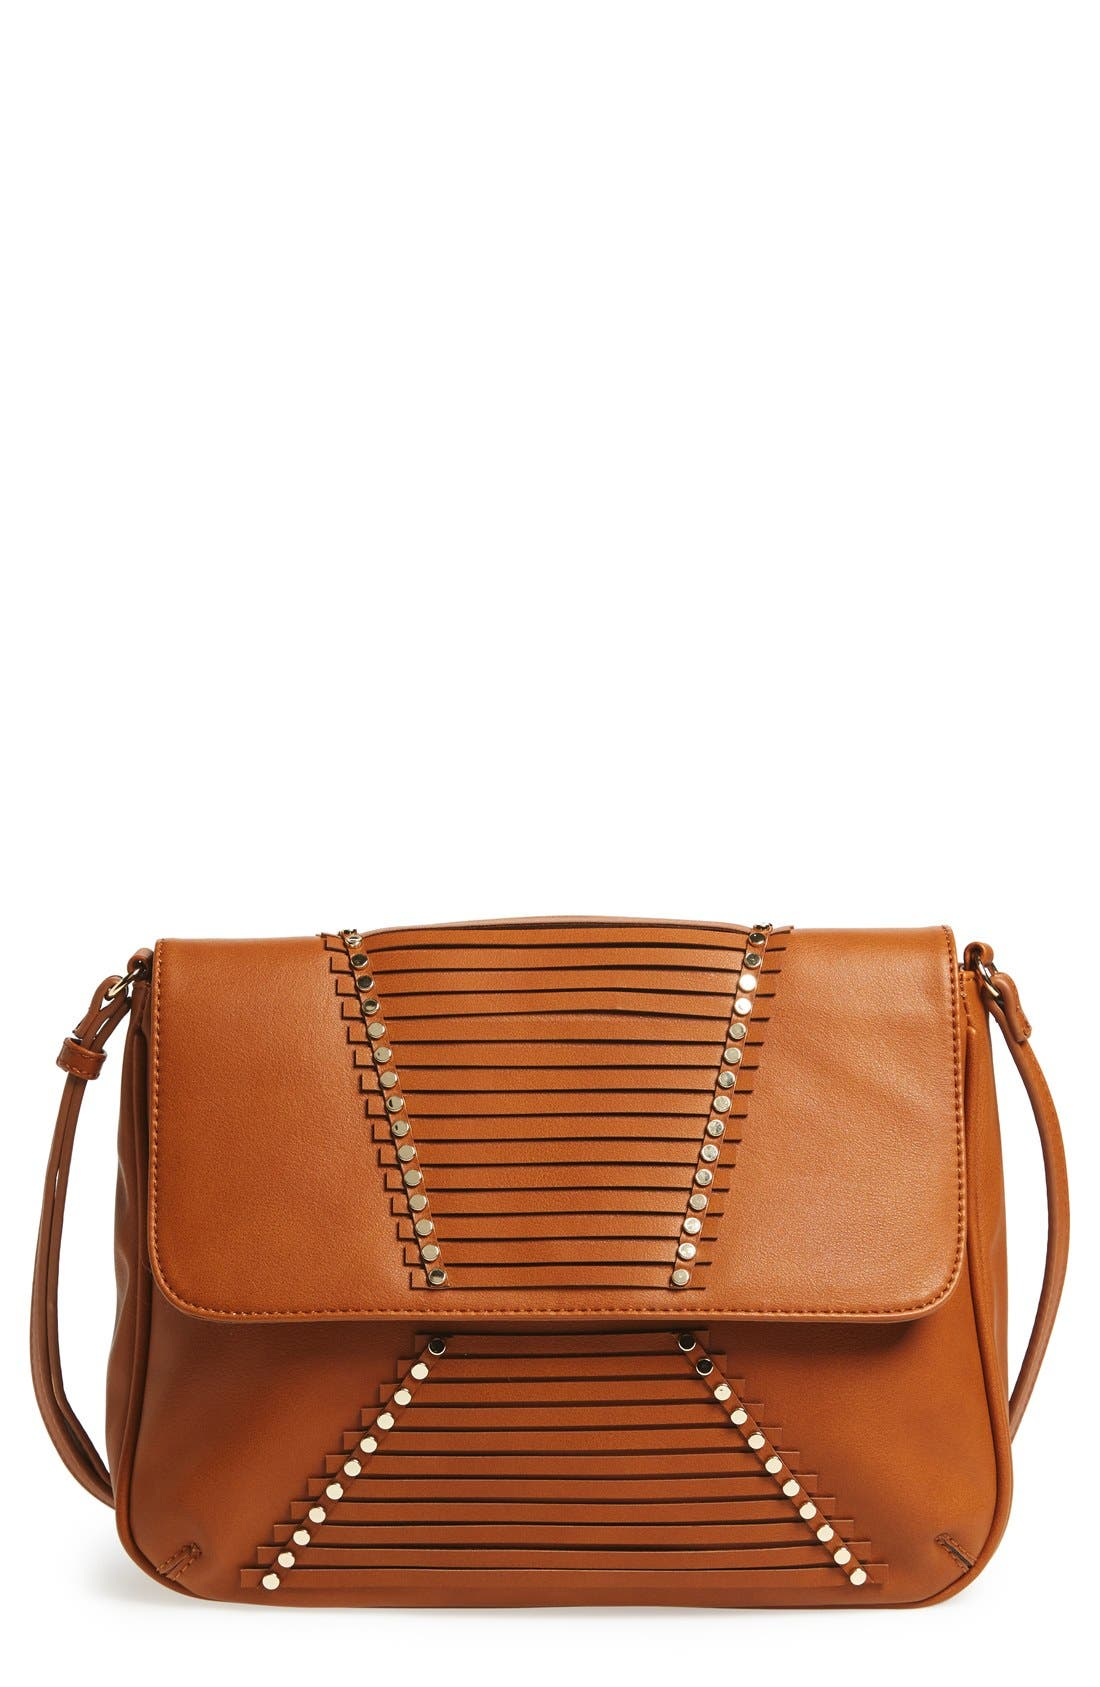 'Larissa' Studded Flap Faux Leather Crossbody Bag,                         Main,                         color, Cognac